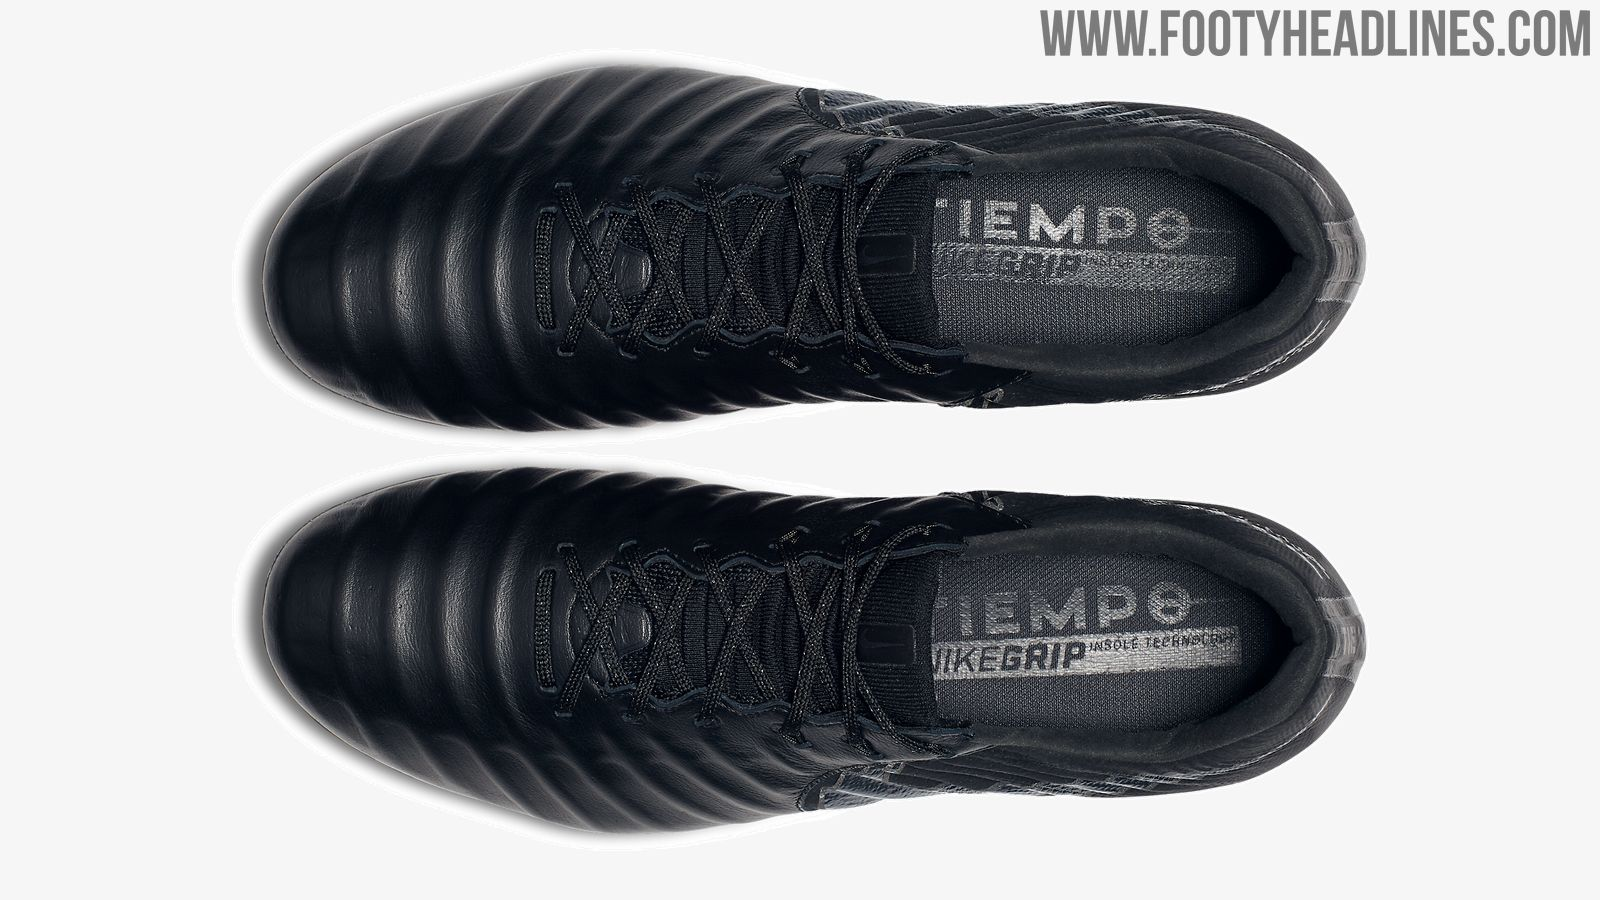 5c9d73b6a Blackout Nike Tiempo Legend VII Stealth Ops Boots Released - Footy ...